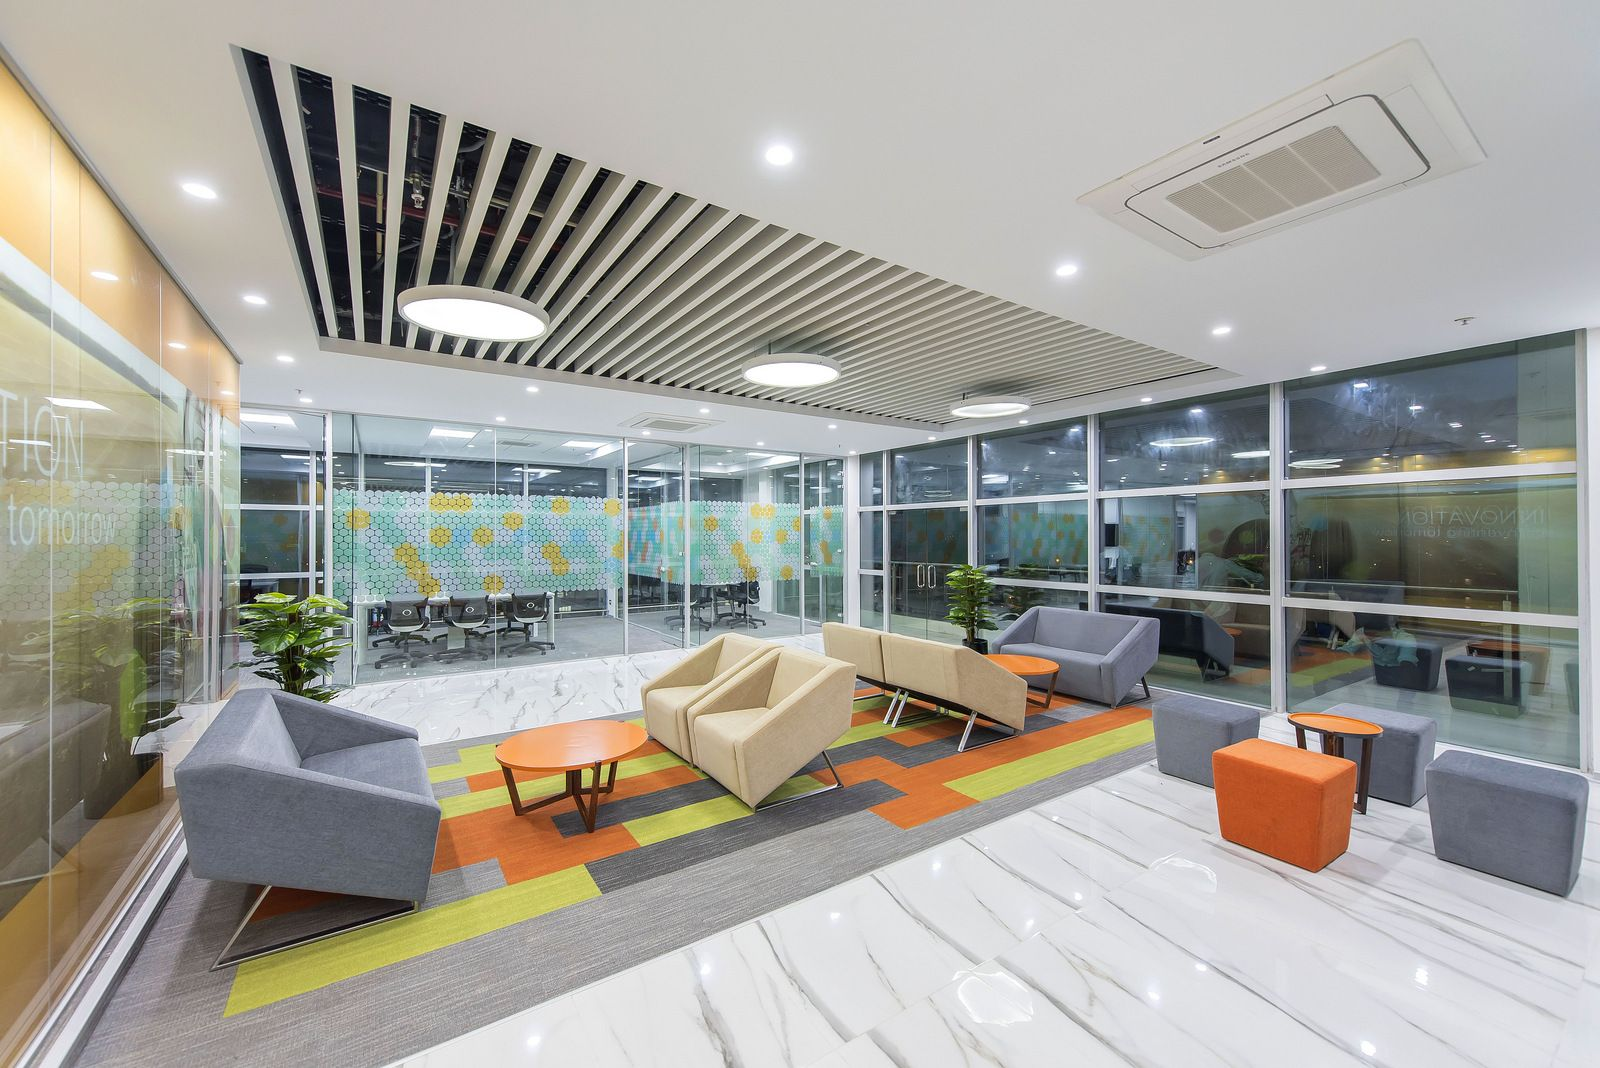 Office Tour Trelleborg Offices Bangalore Oficinas # Muebles Lacados Gaete